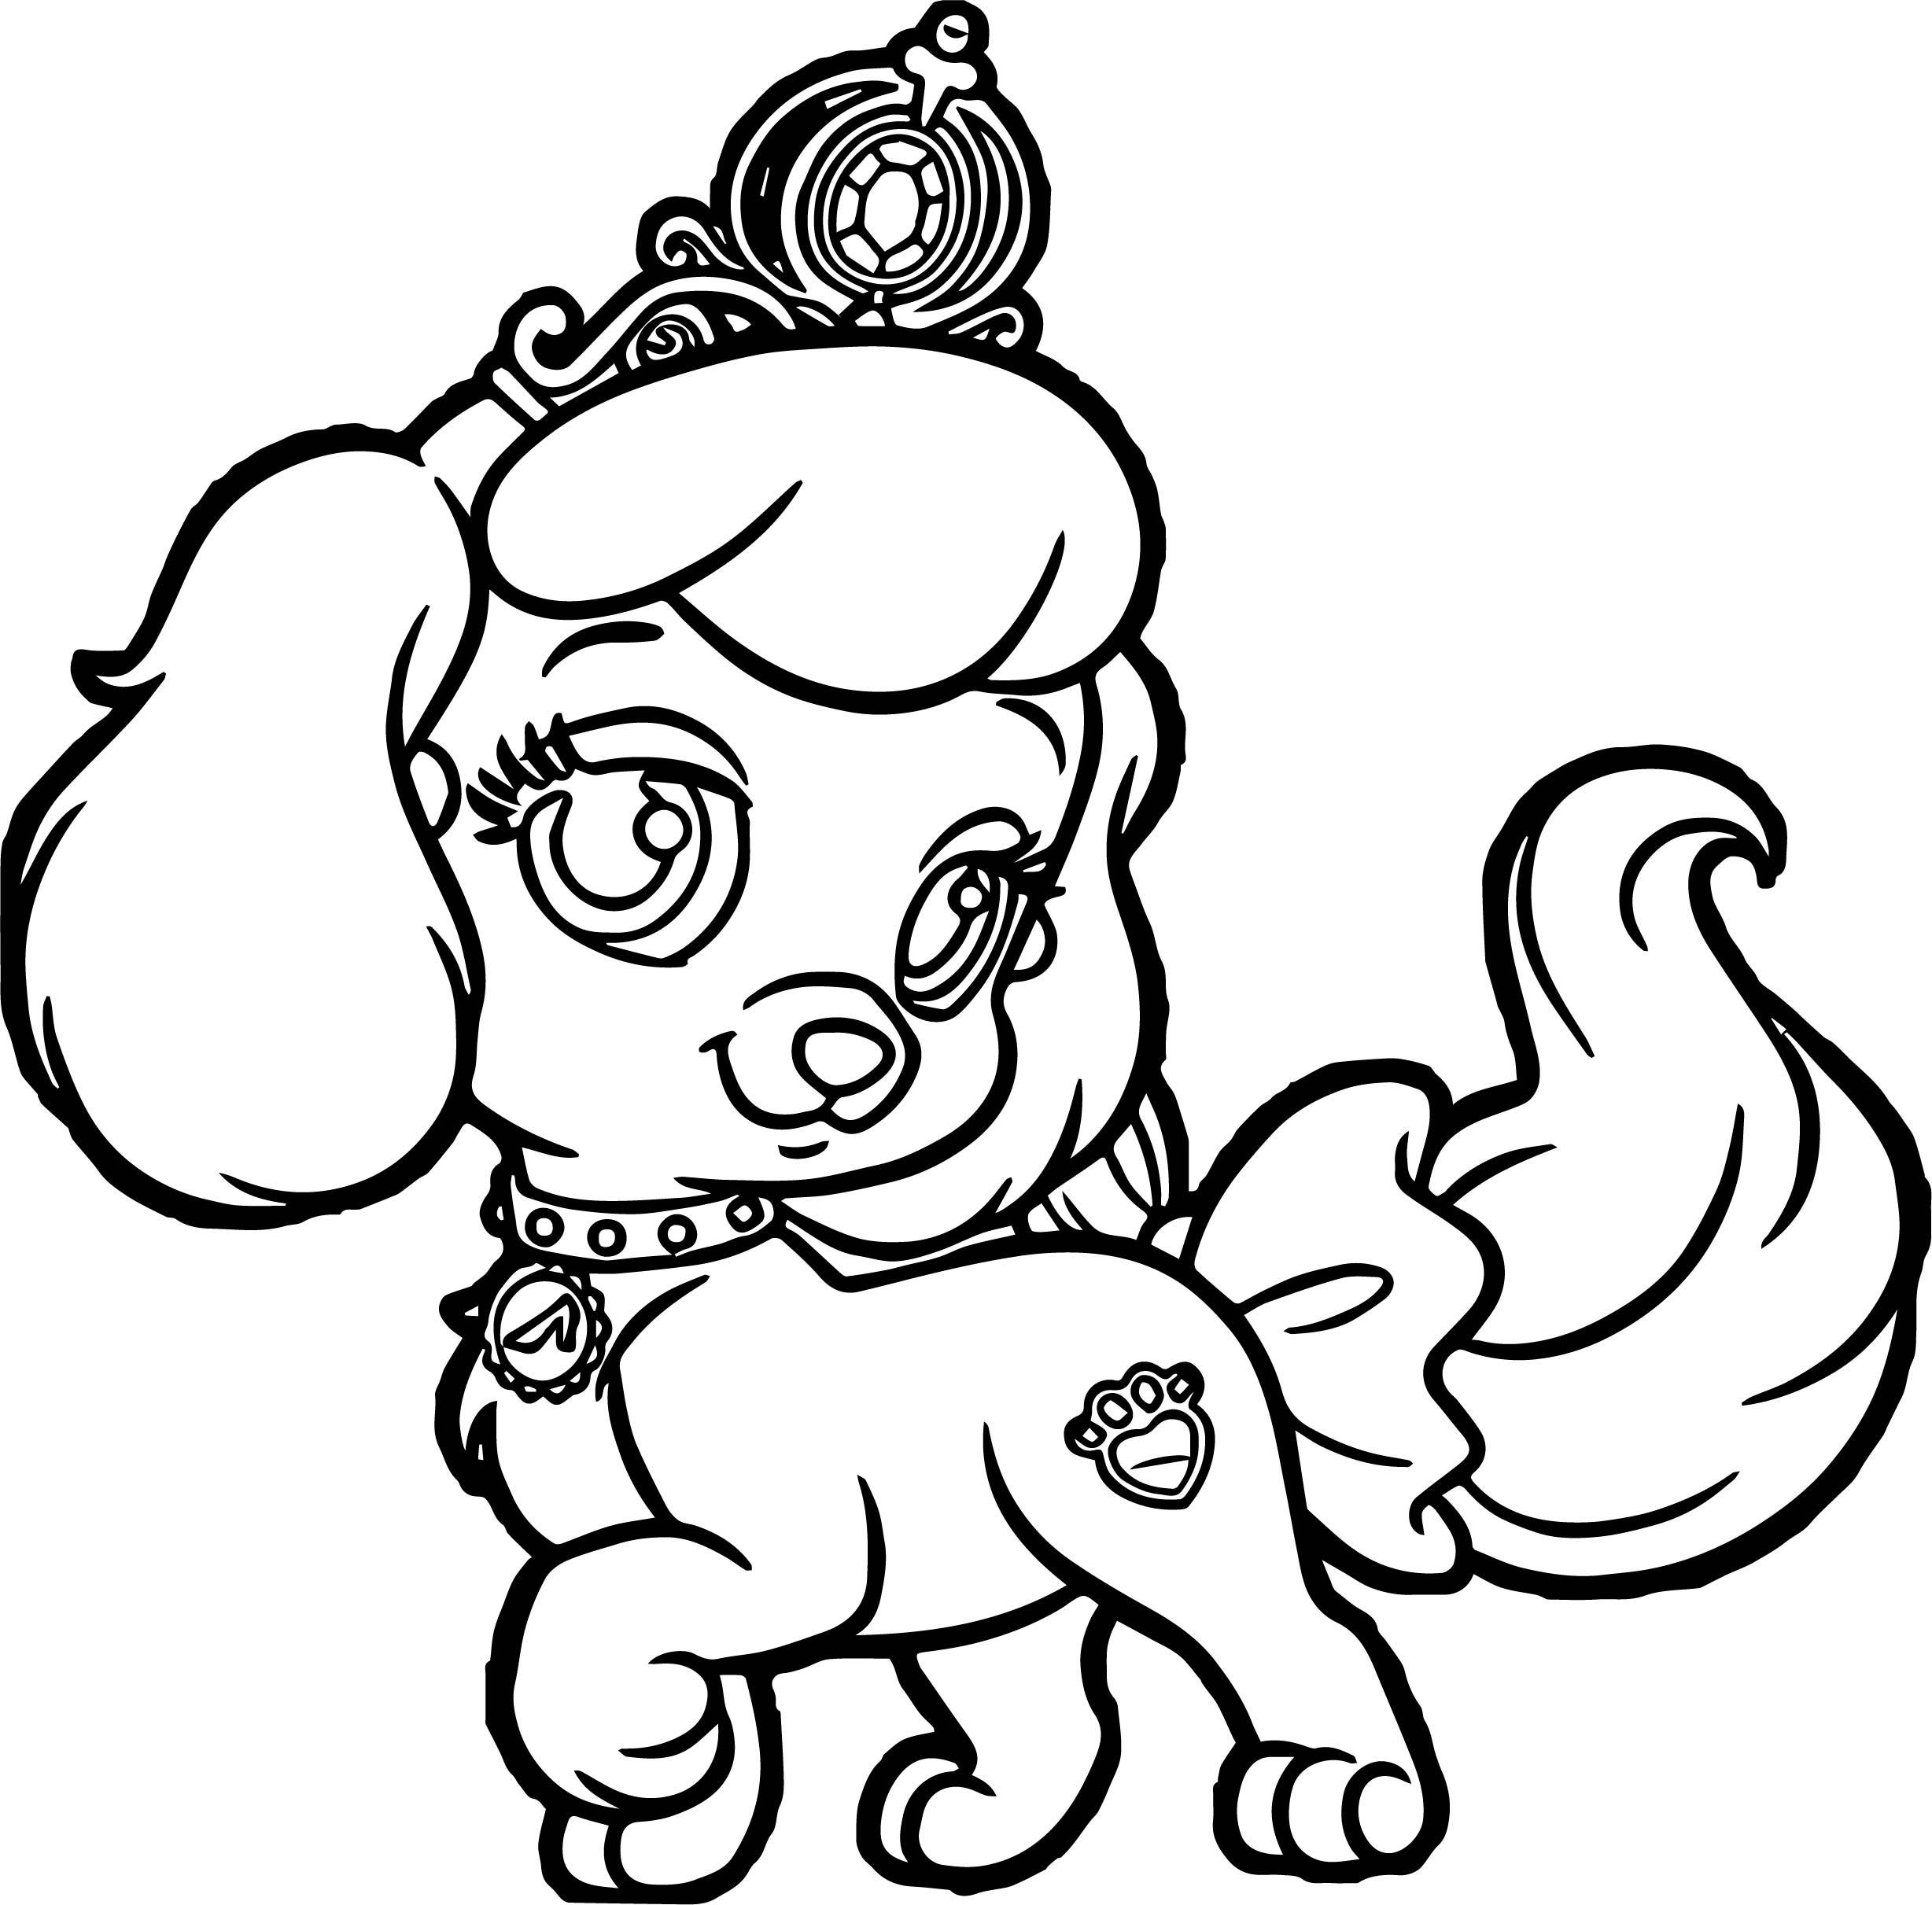 colouring pages of dog dog coloring pages for kids print them online for free of colouring dog pages